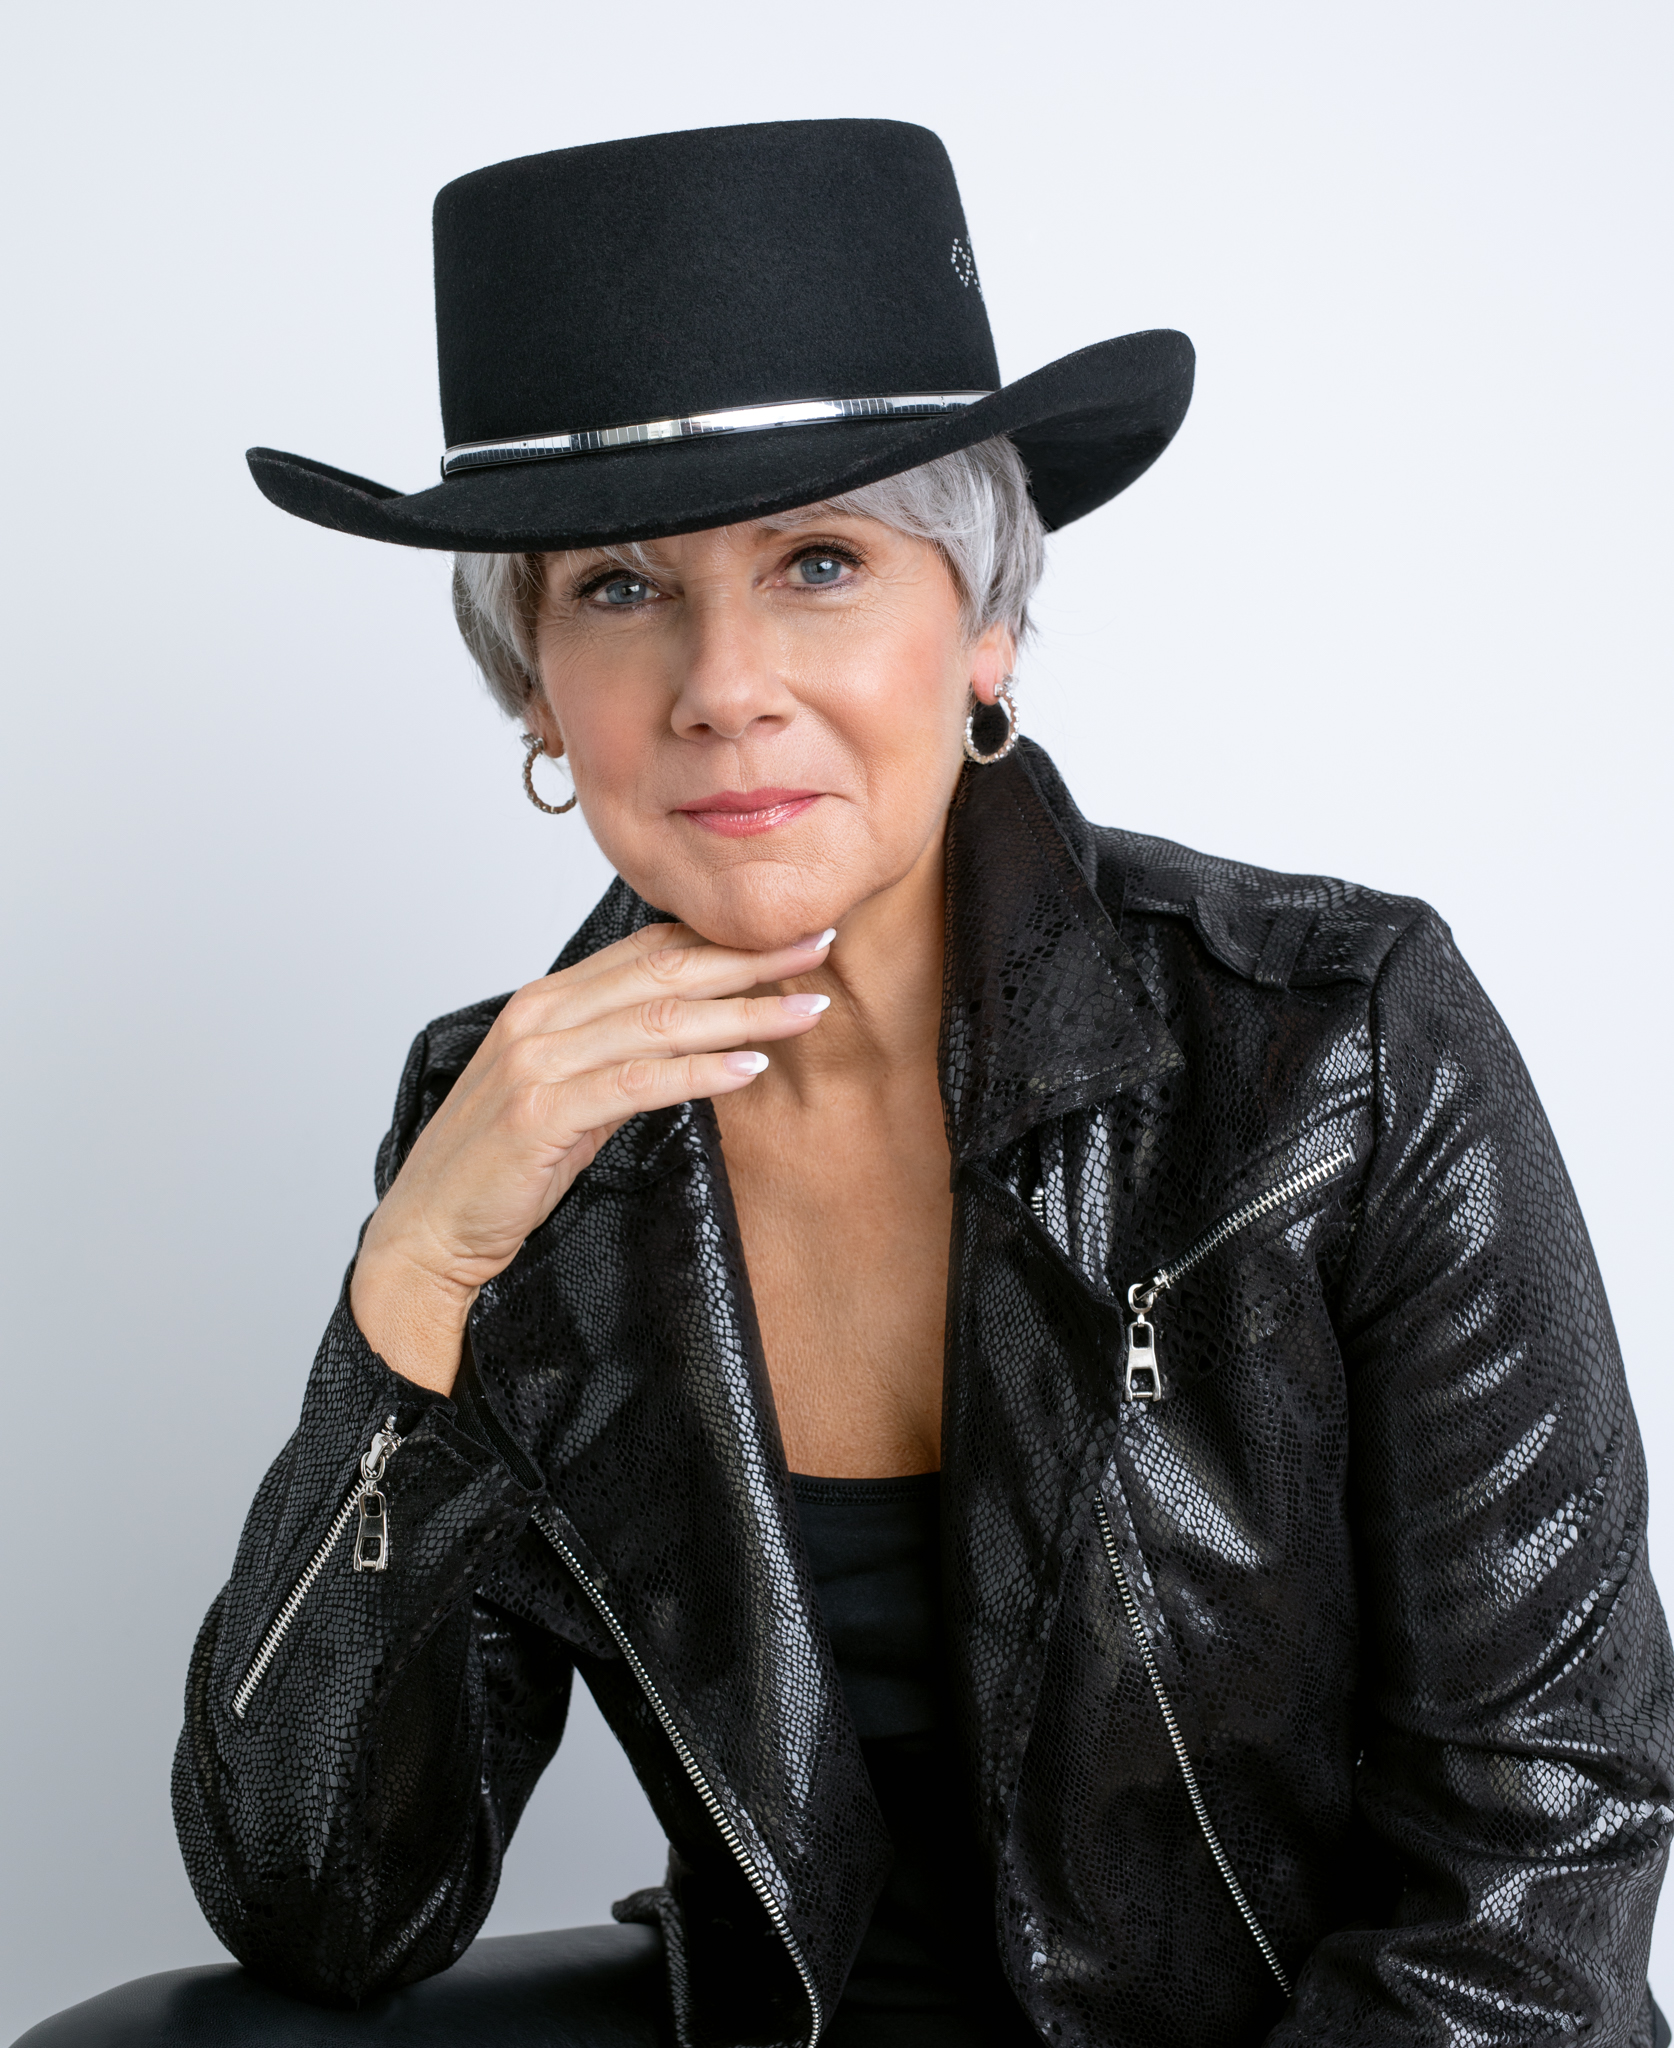 Gray haired woman in black hat and black leather jacket.